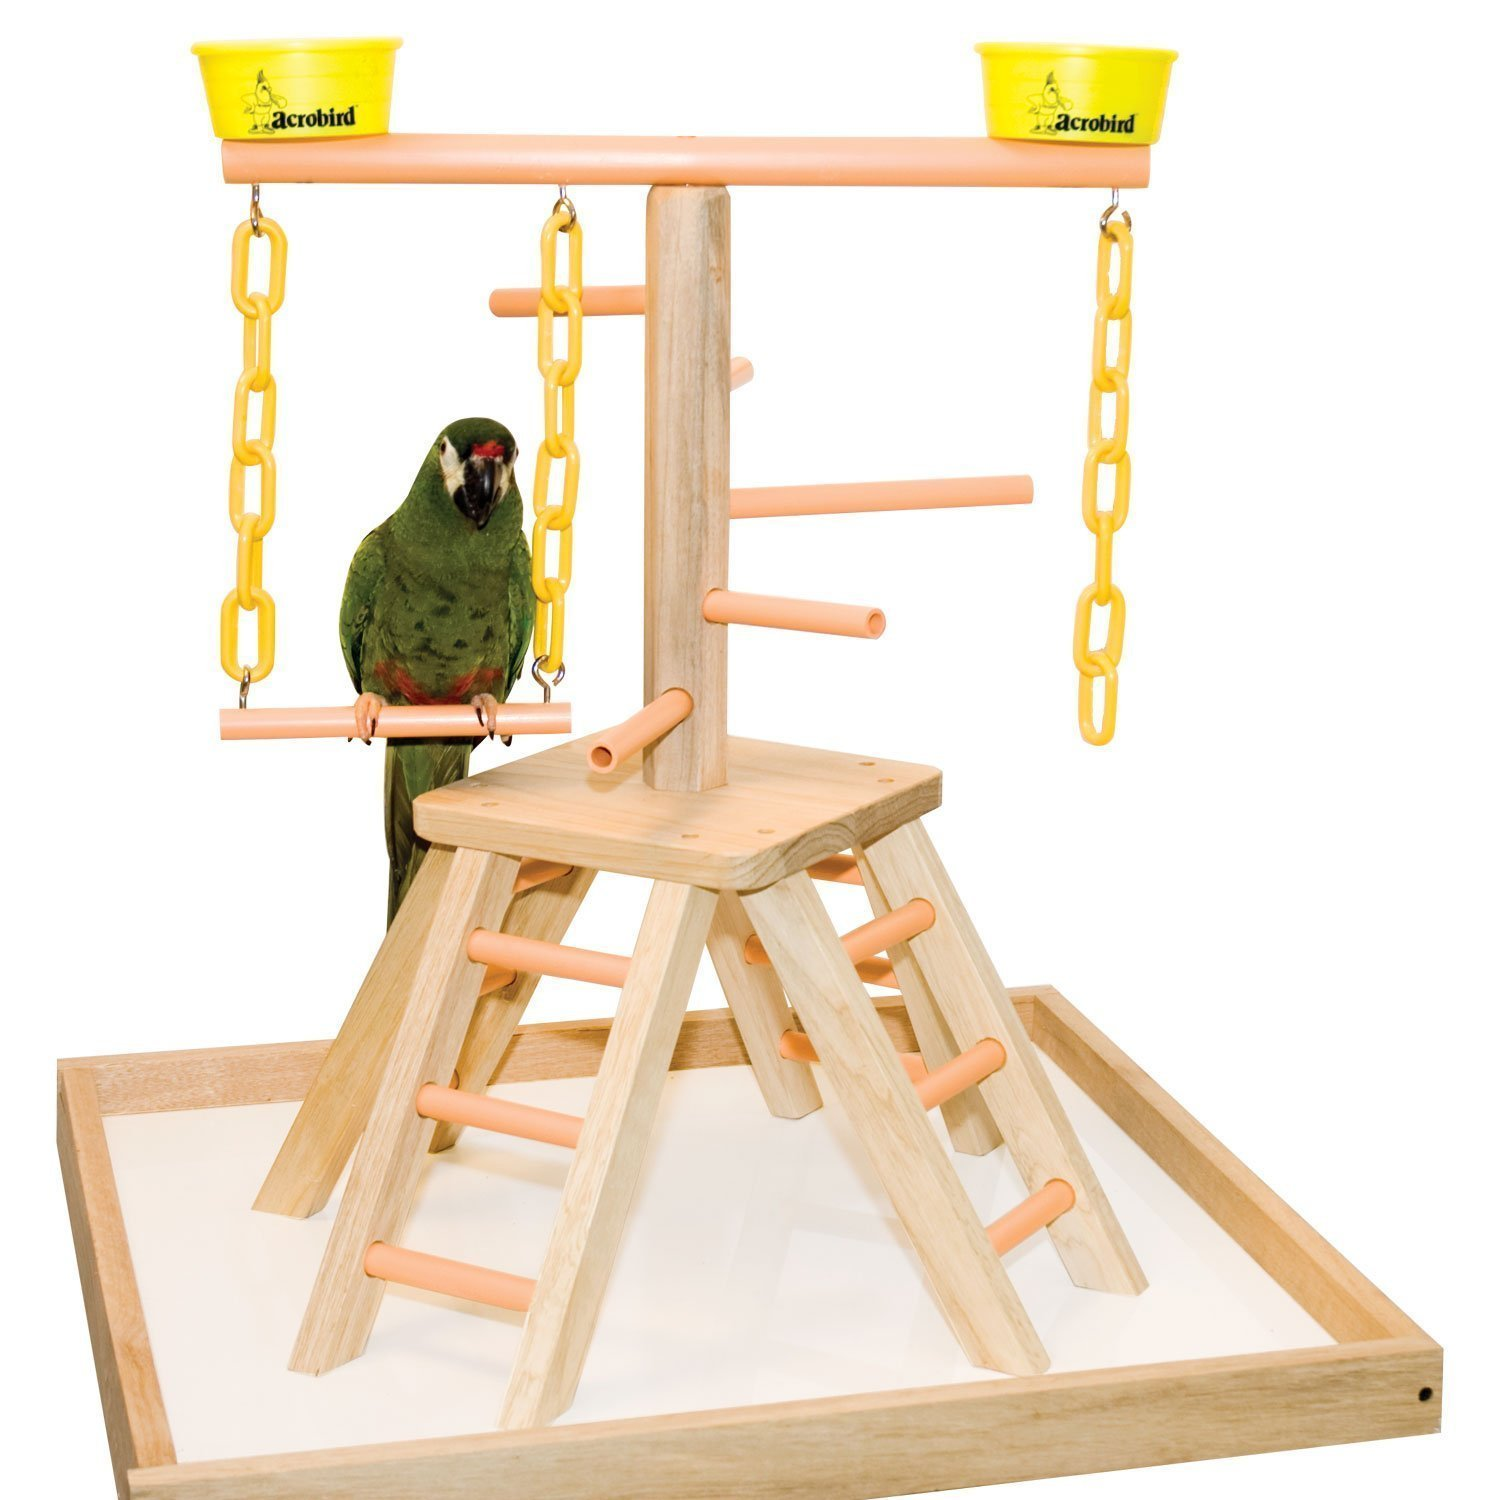 Acrobird PB20 Pyramid with Base Pet Toy, 20-Inch by Acrobird